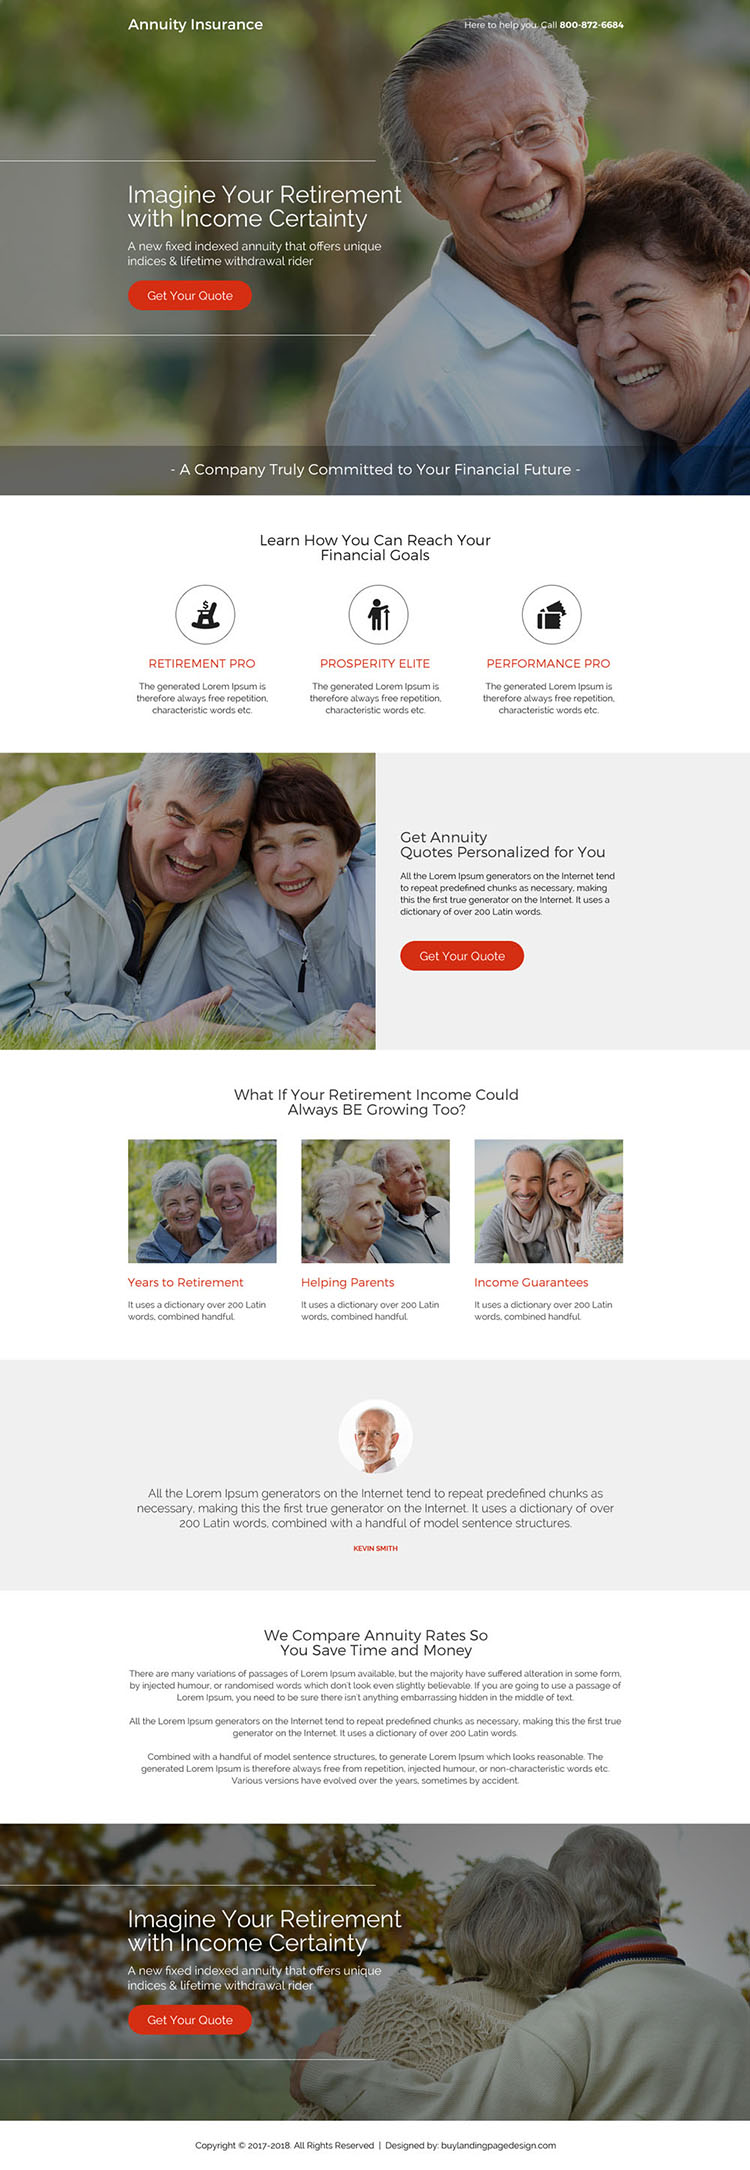 modern and professional annuity insurance landing page design